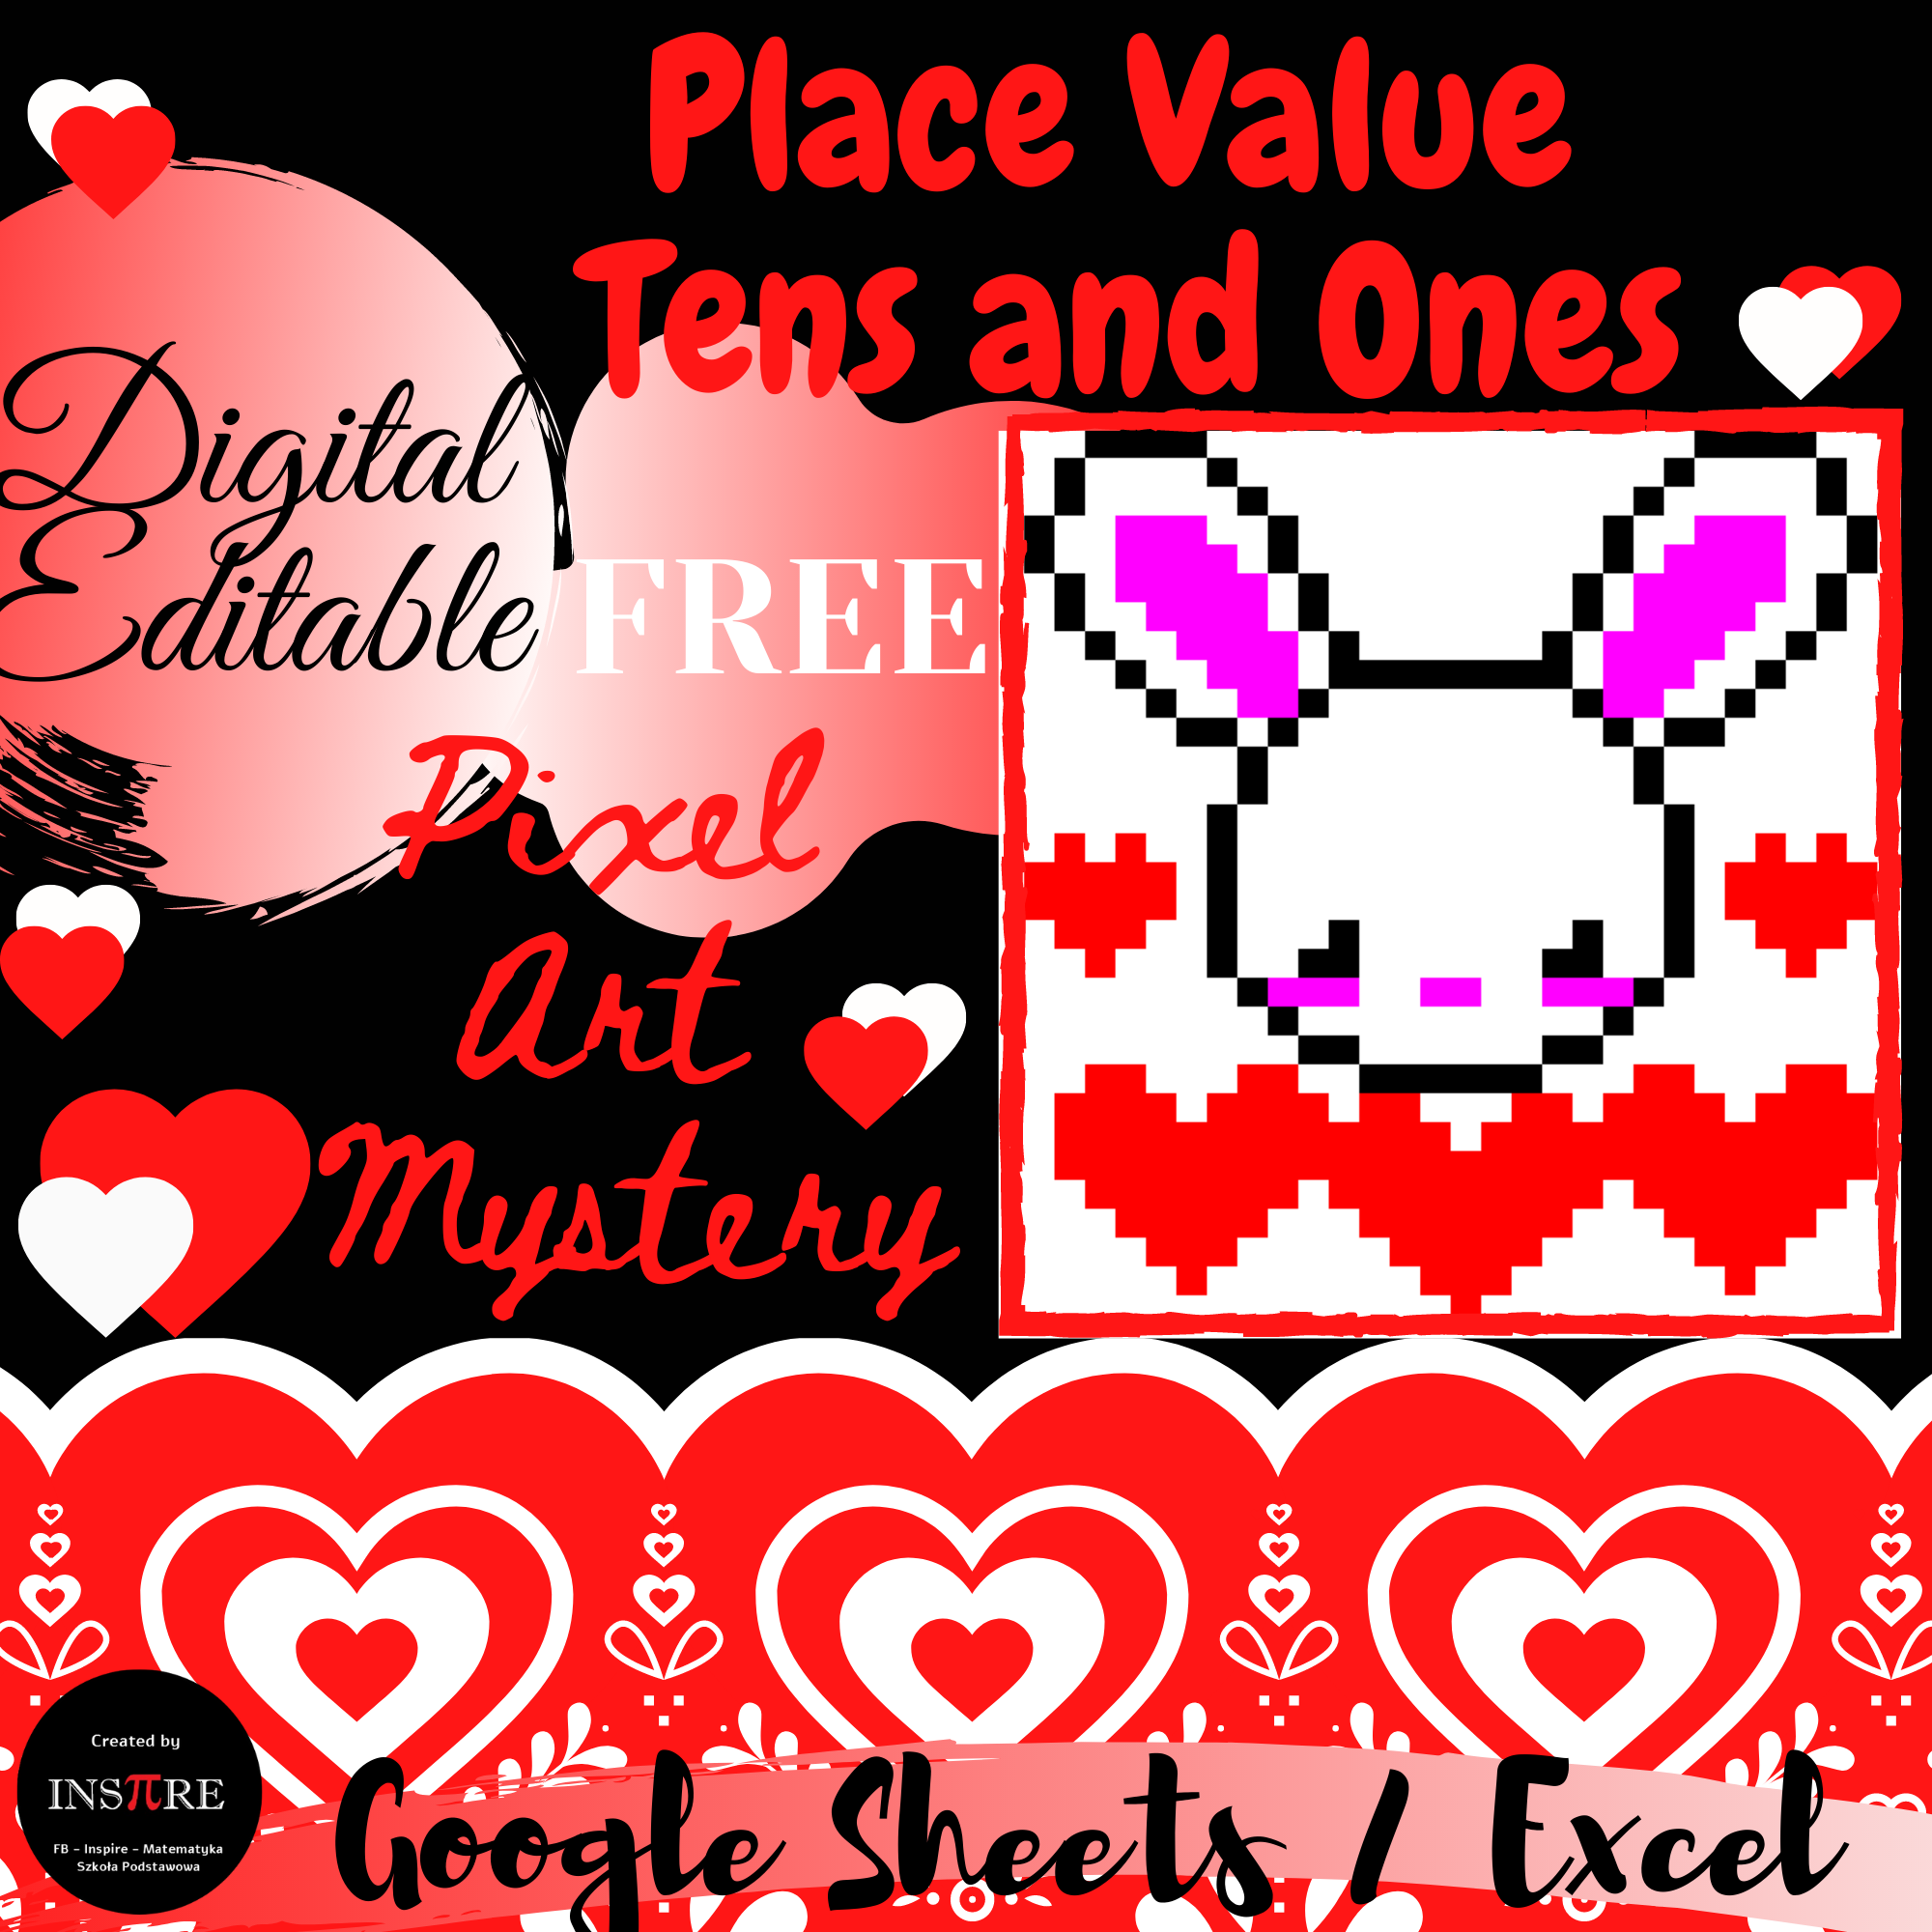 Free Place Value Tens And Ones Bunny Valentine S Day Math Pixel Art Mystery Digital In 2021 Bunny Valentines Valentines Day Activities Math [ 2000 x 2000 Pixel ]